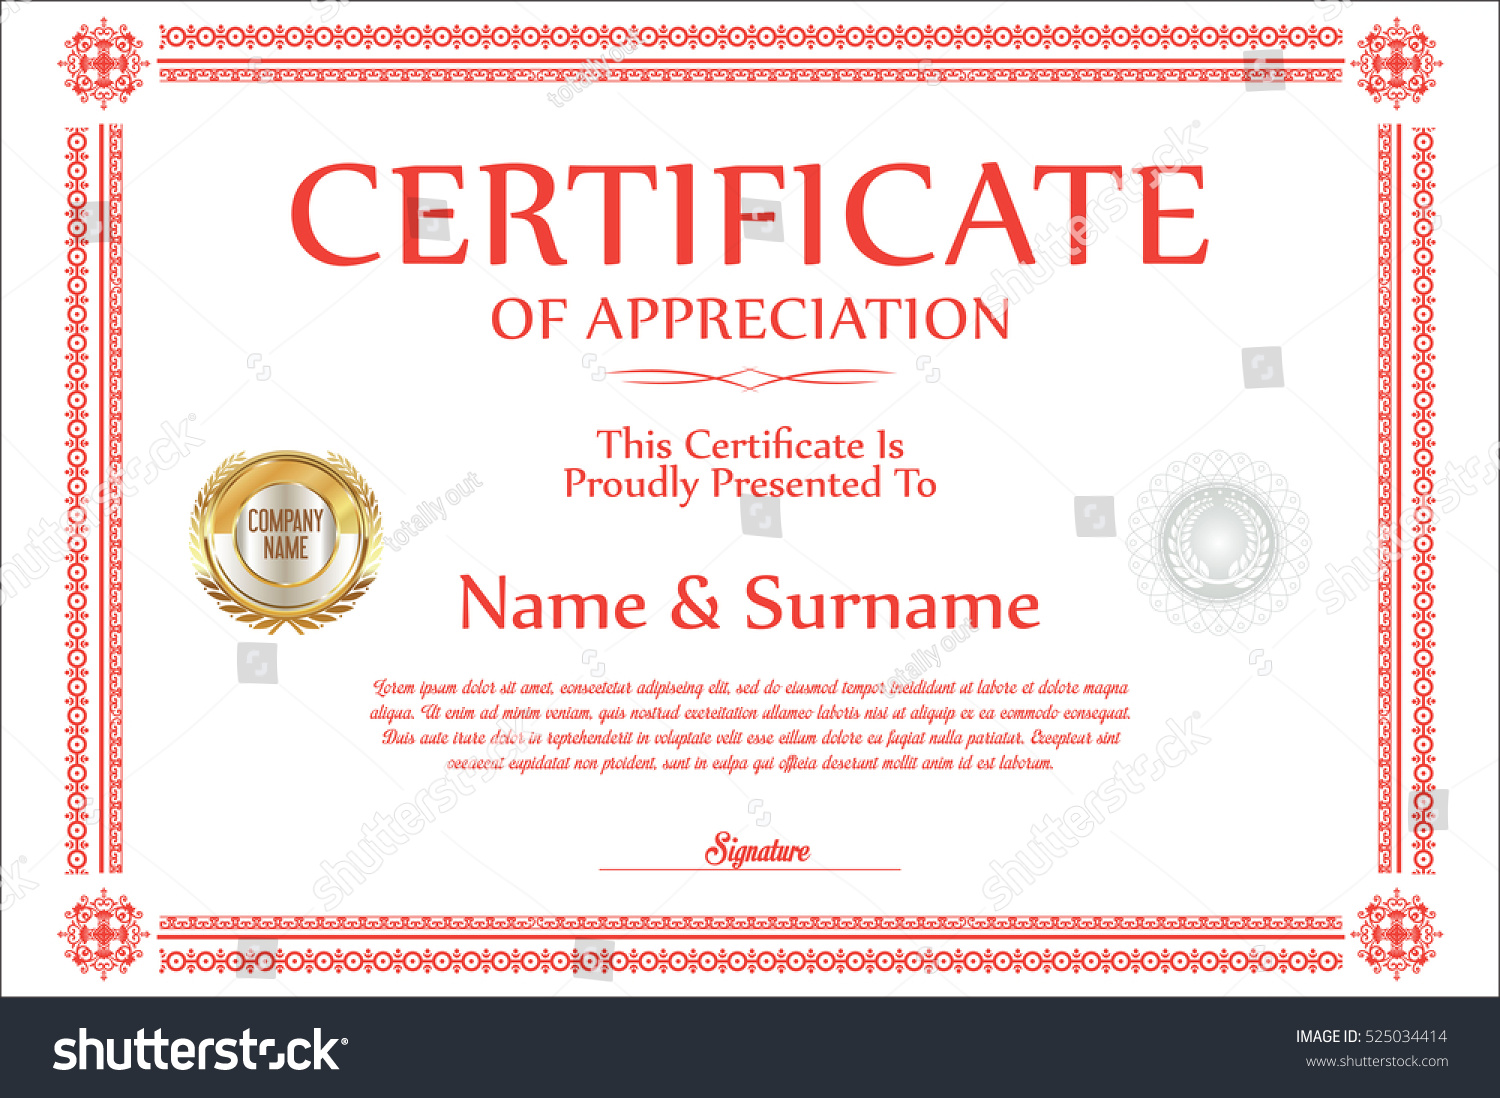 Cooking certificate template weblogic administration cover letter sample certificate retro design great task schedule template free stock vector certificate template retro design background yadclub Choice Image